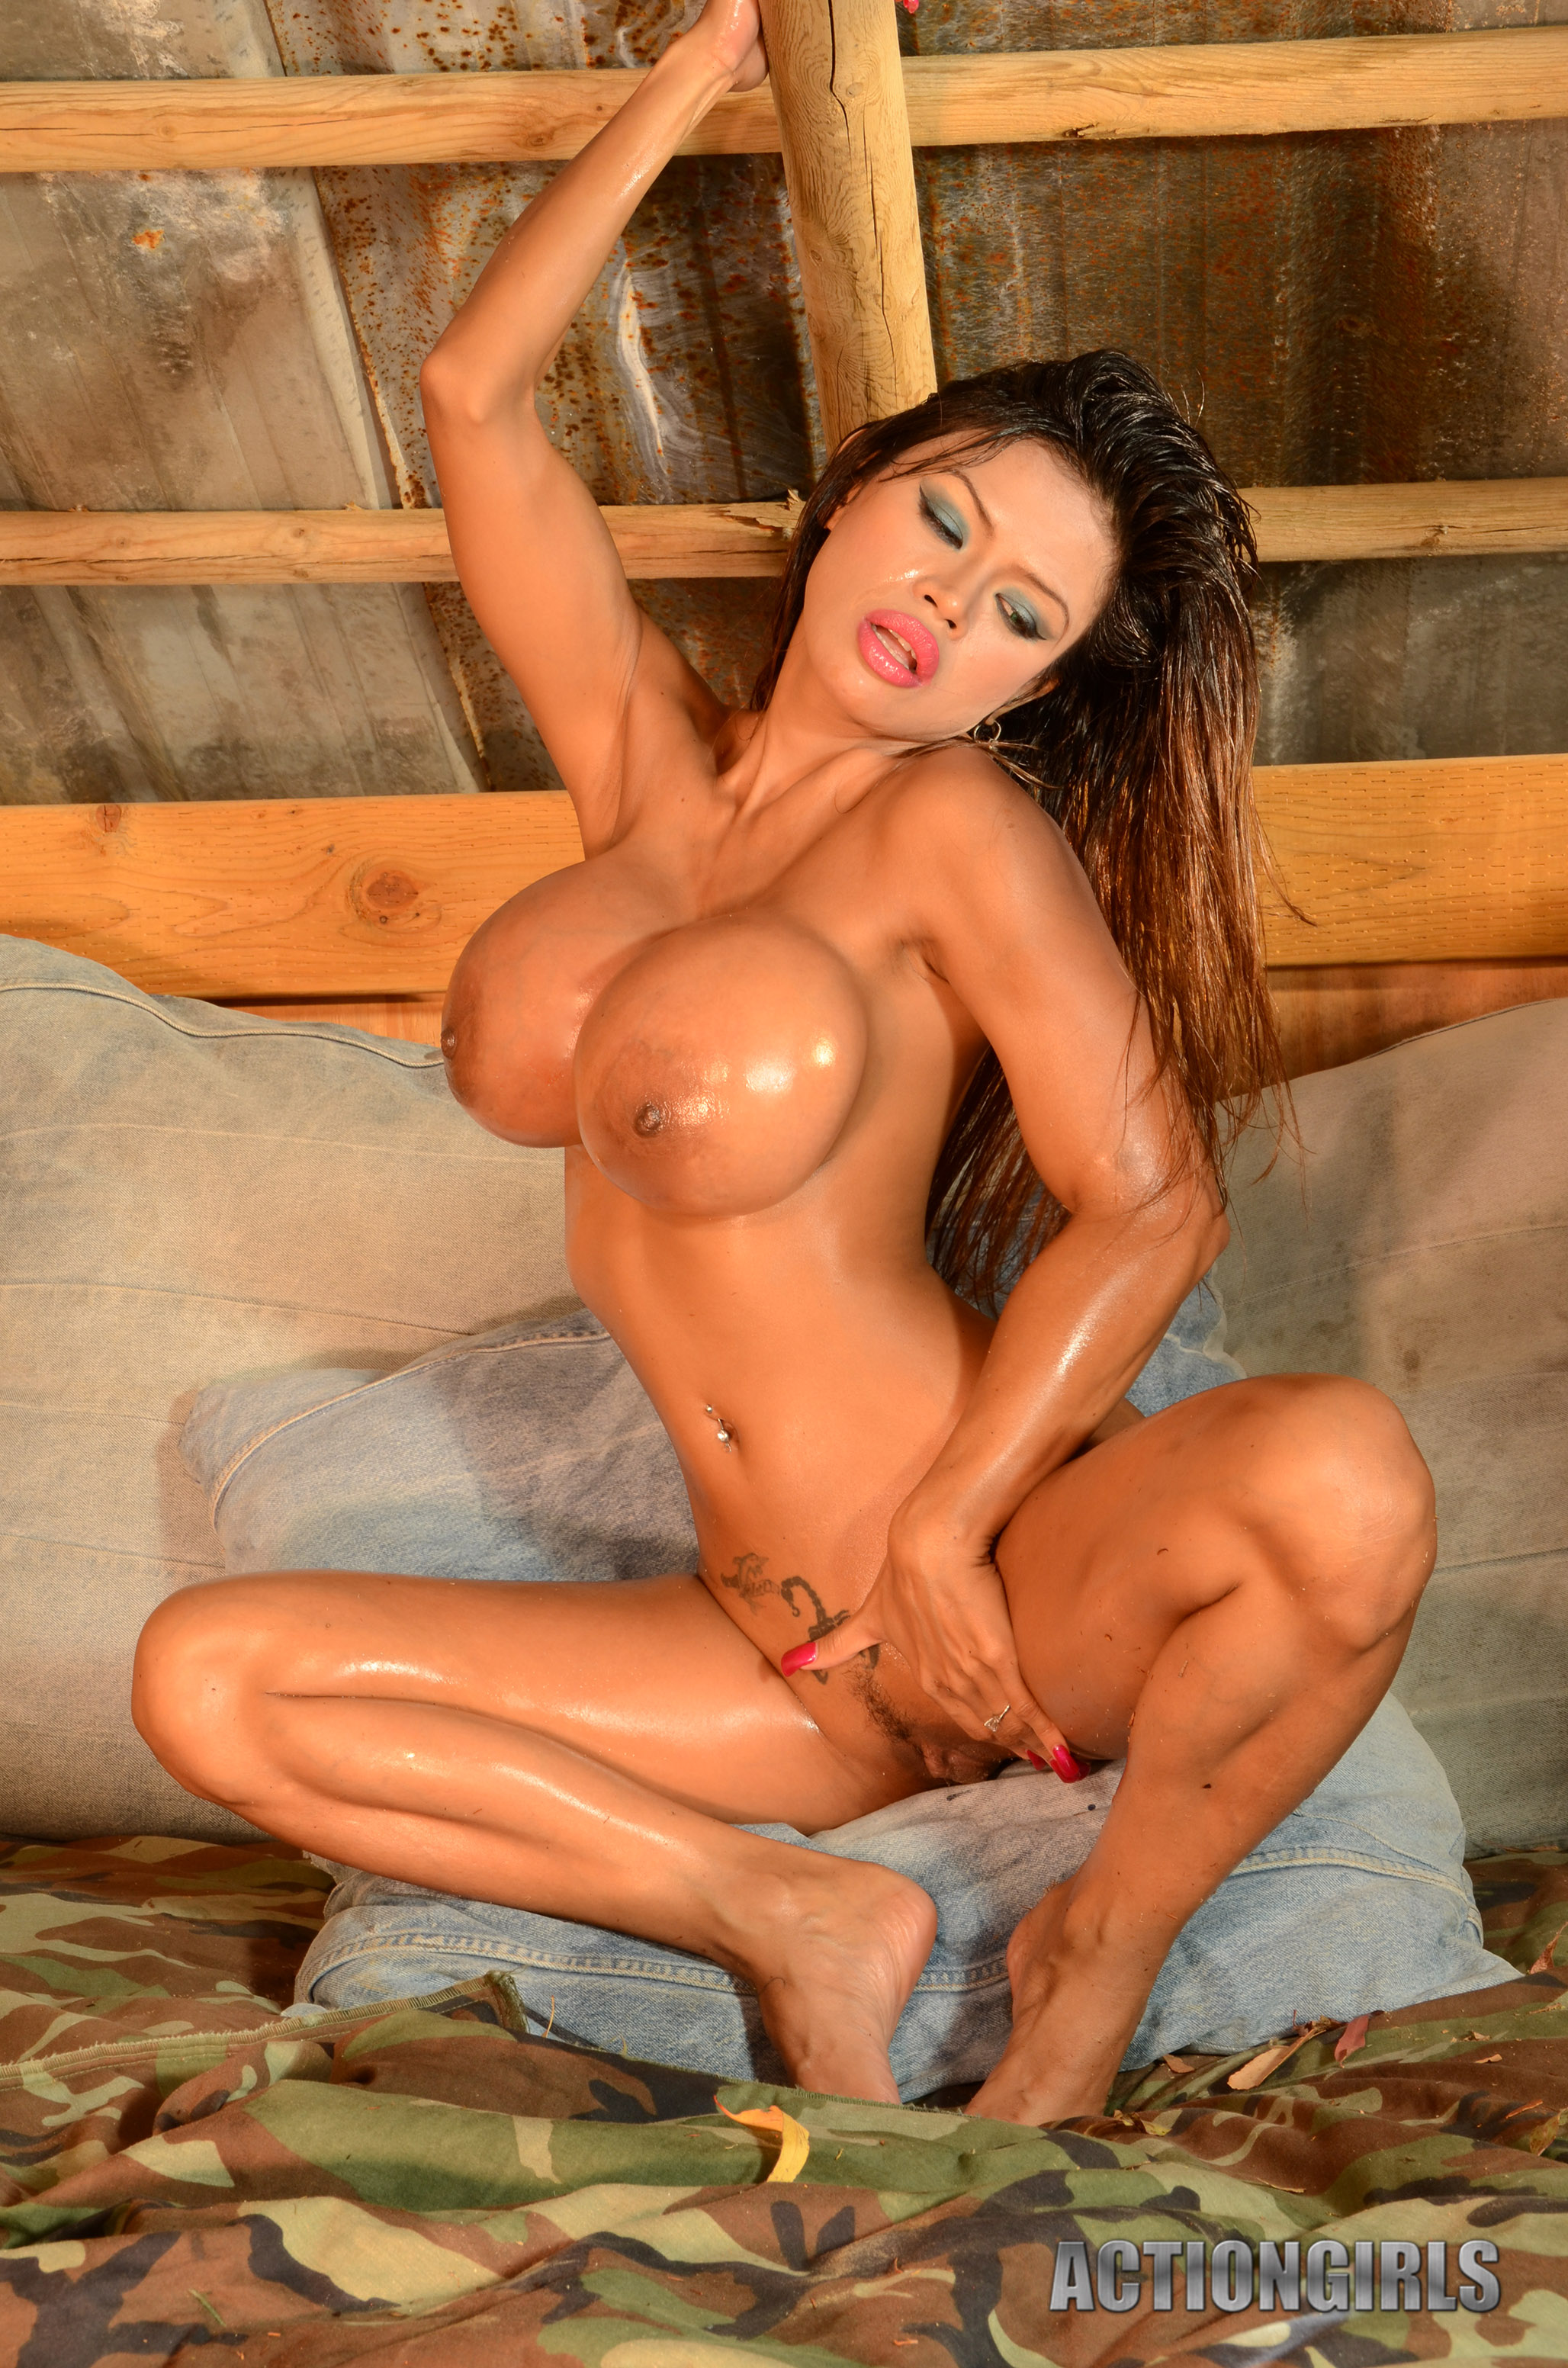 Actiongirls xxx picture gallery fucks picture